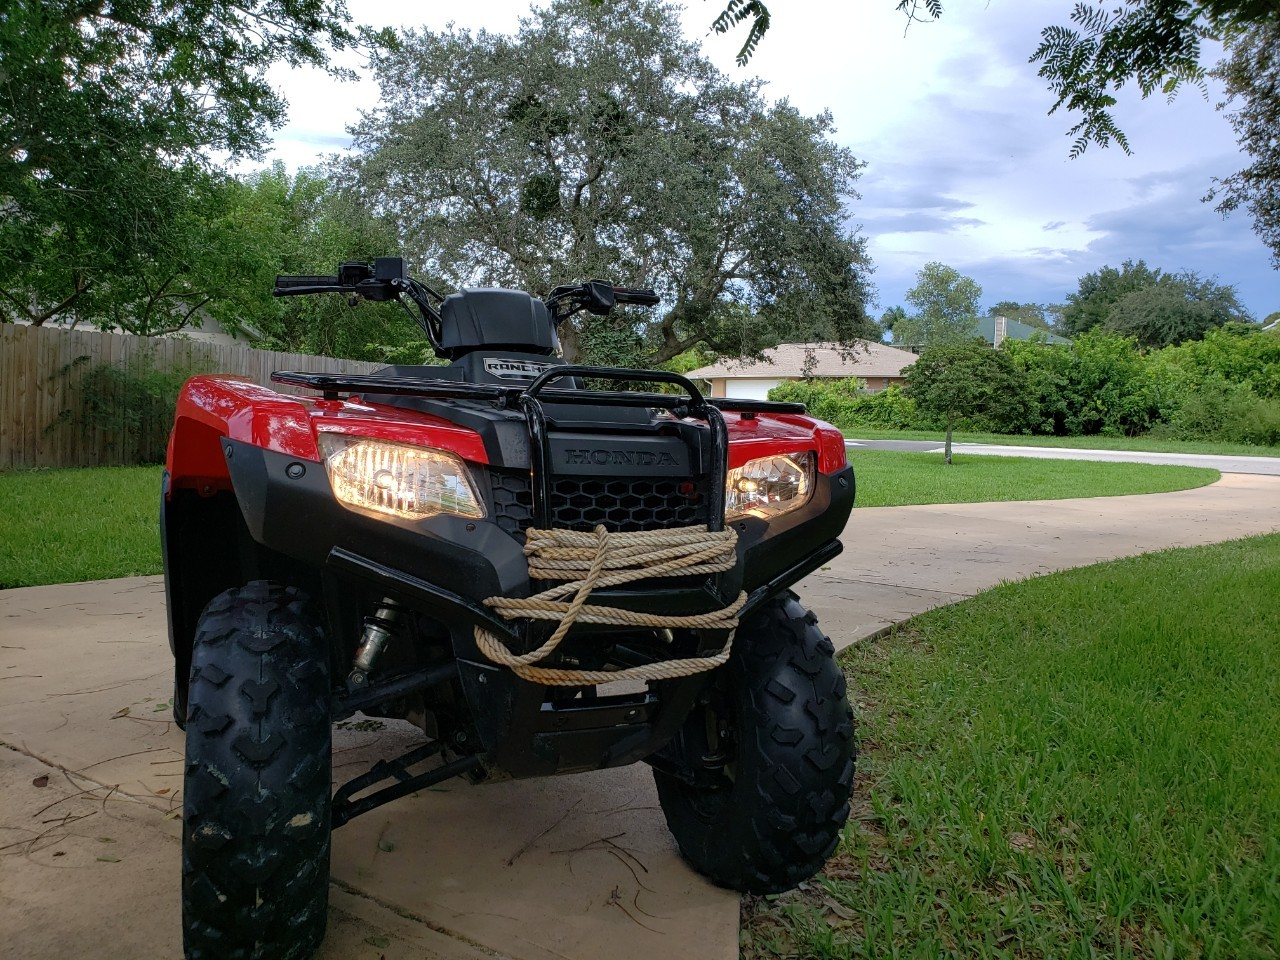 Fourtrax Rancher 2X4 At For Sale - Honda ATV,Side by Side